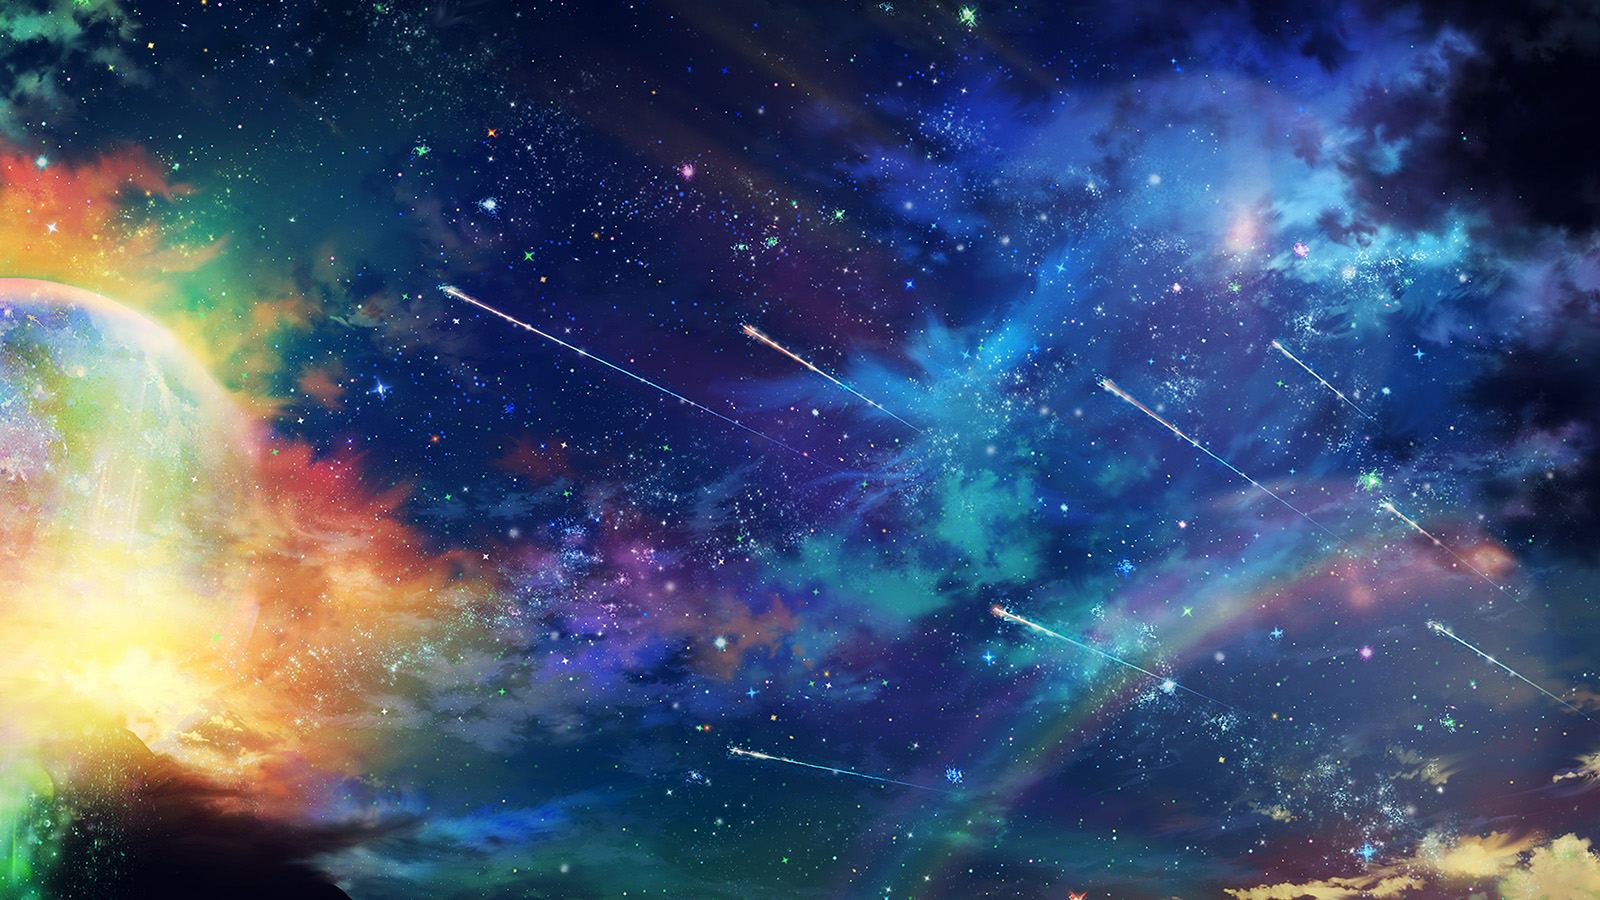 Android Wallpaper Fall Am61 Amazing Wonderful Tonight Sky Dark Star Space Wallpaper